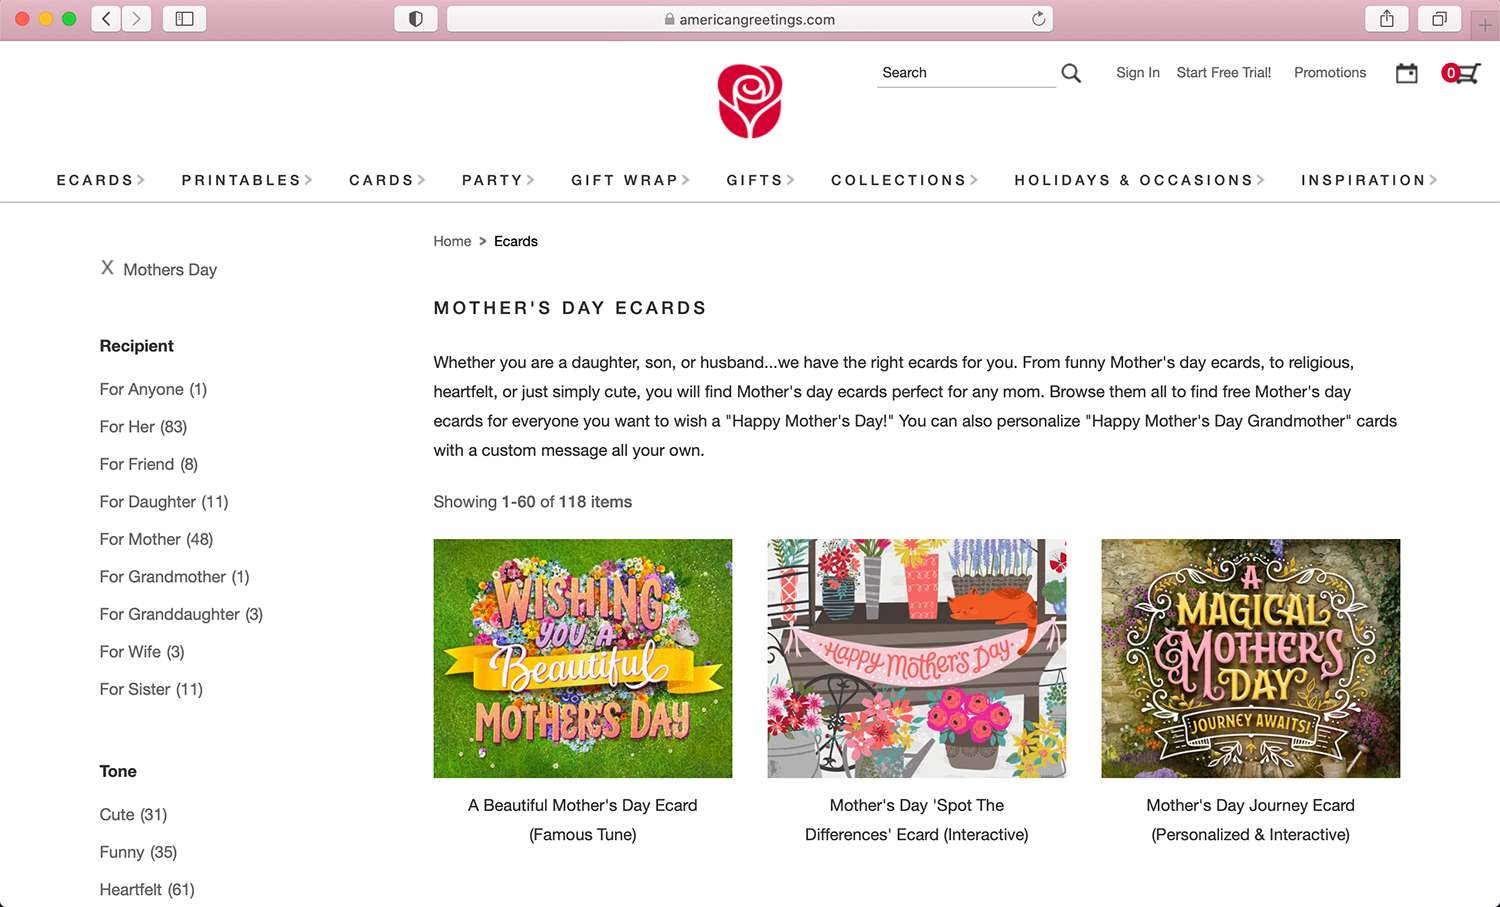 American Greetings e-card website for Mother's Day and other special days